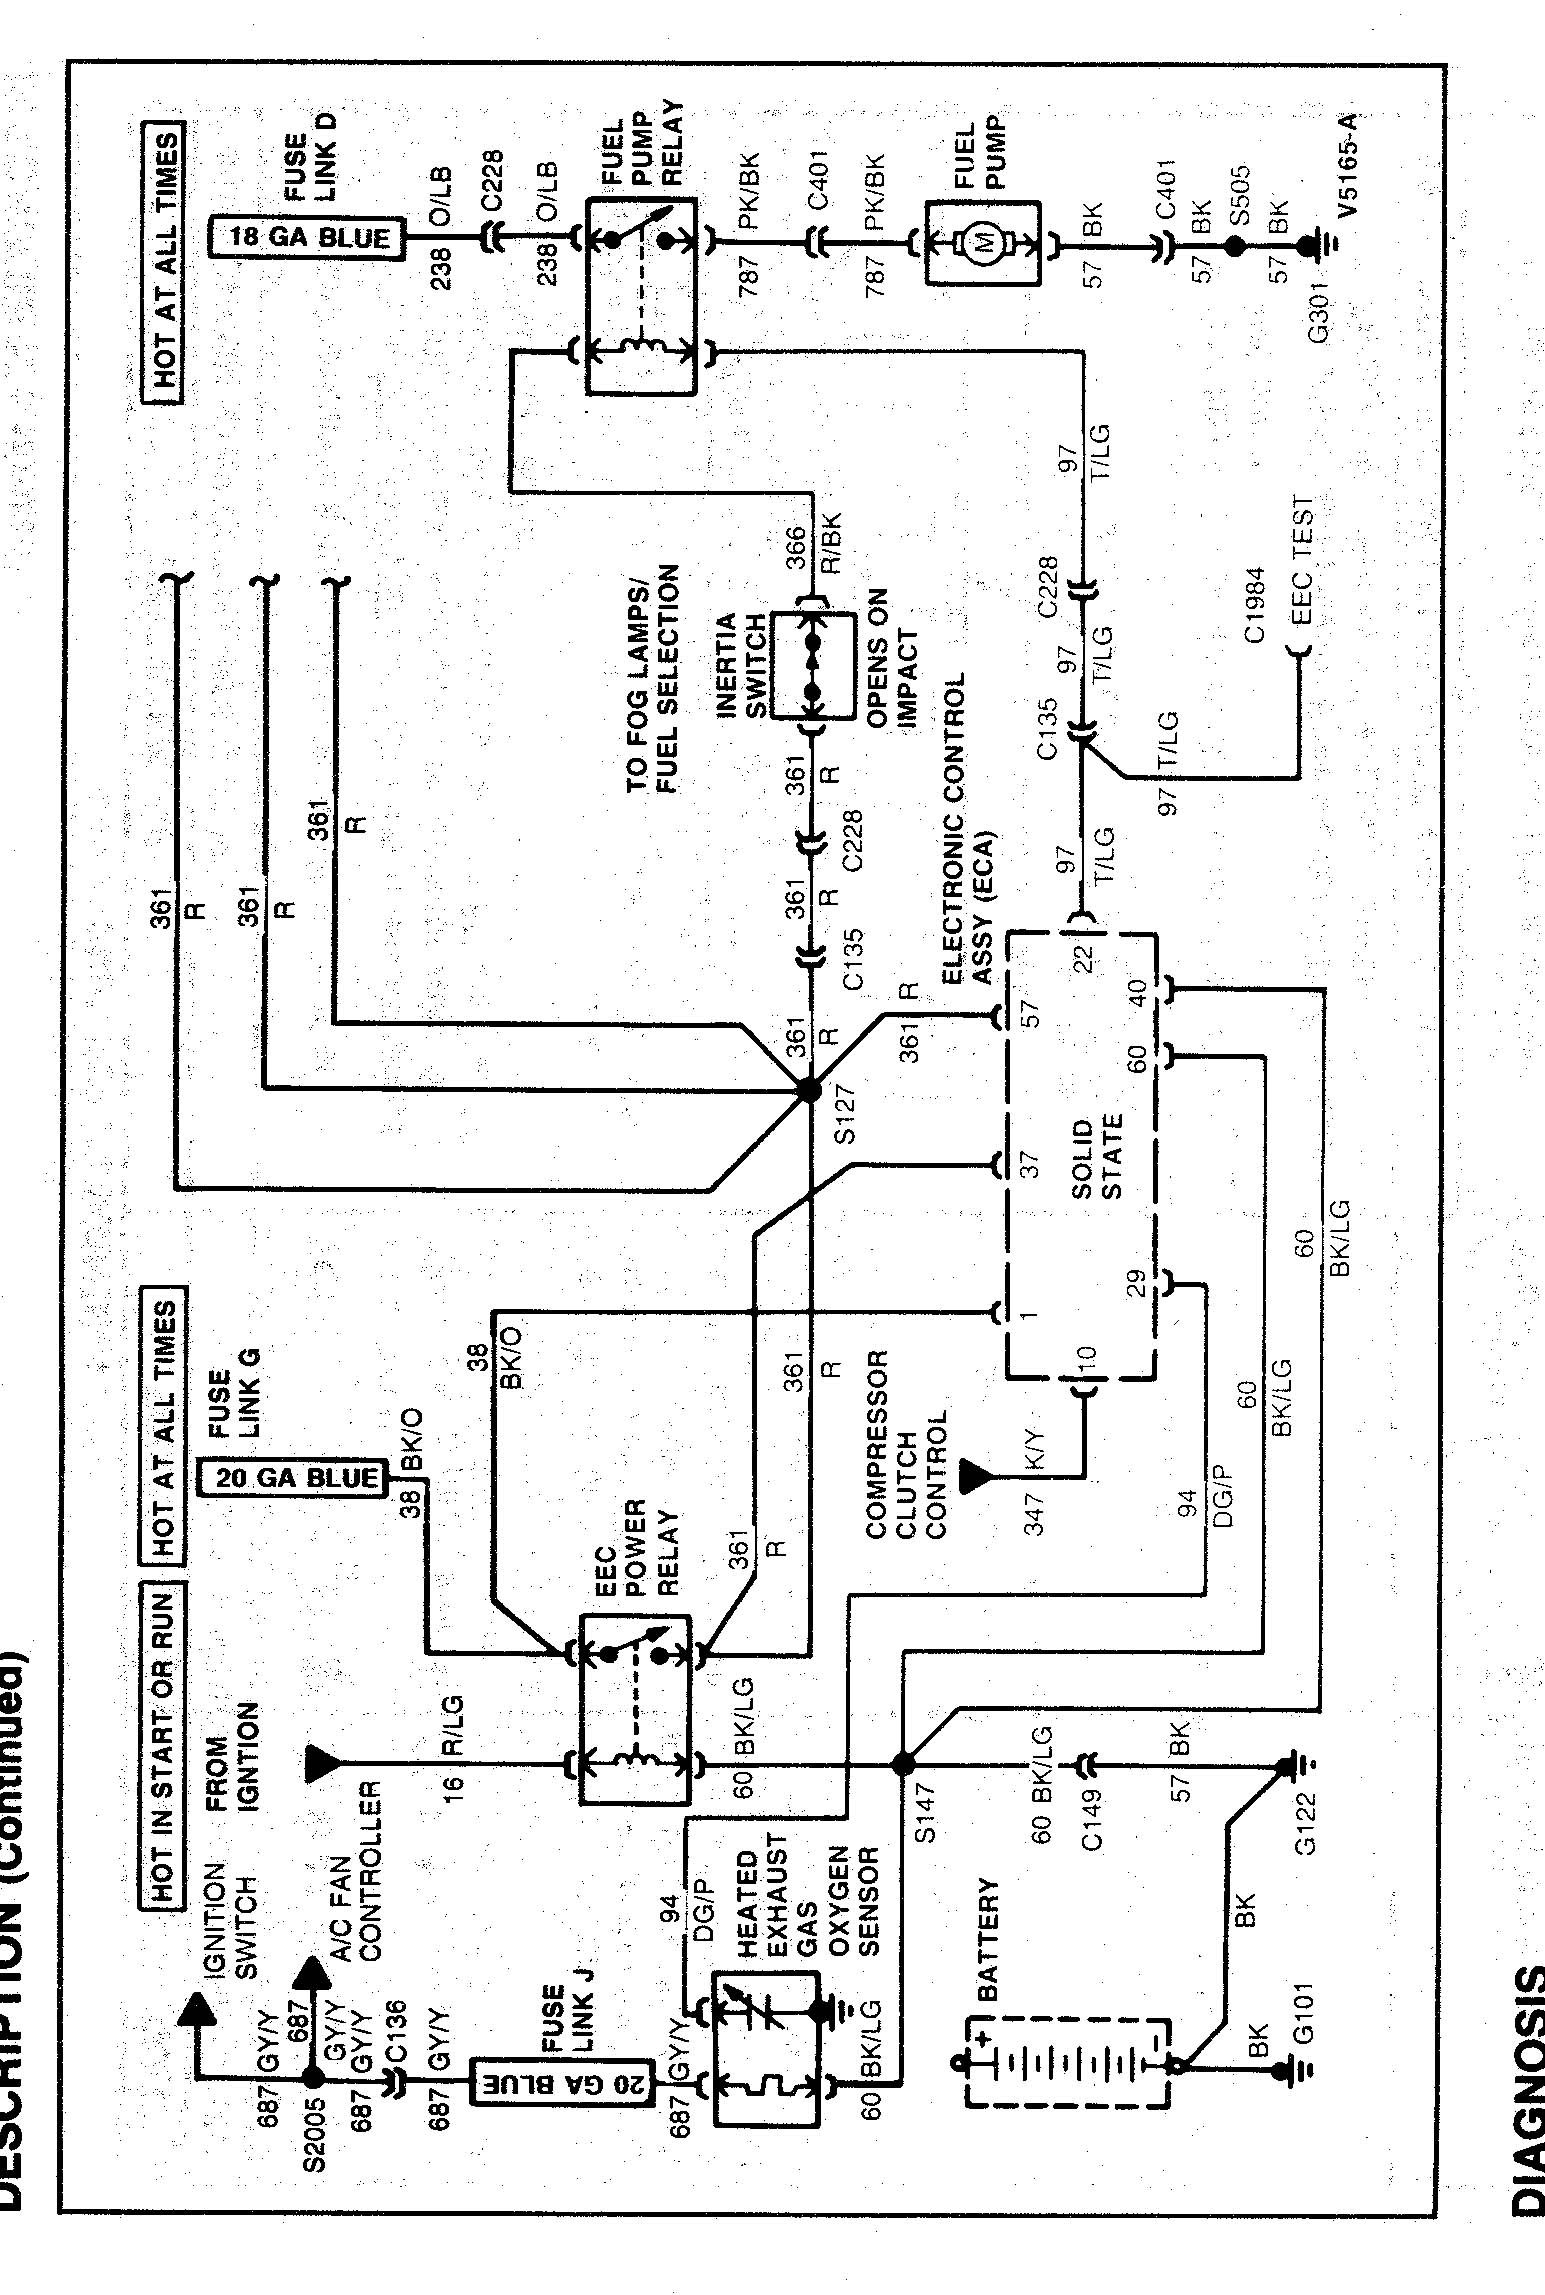 Wiring Diagram For Narva Relay